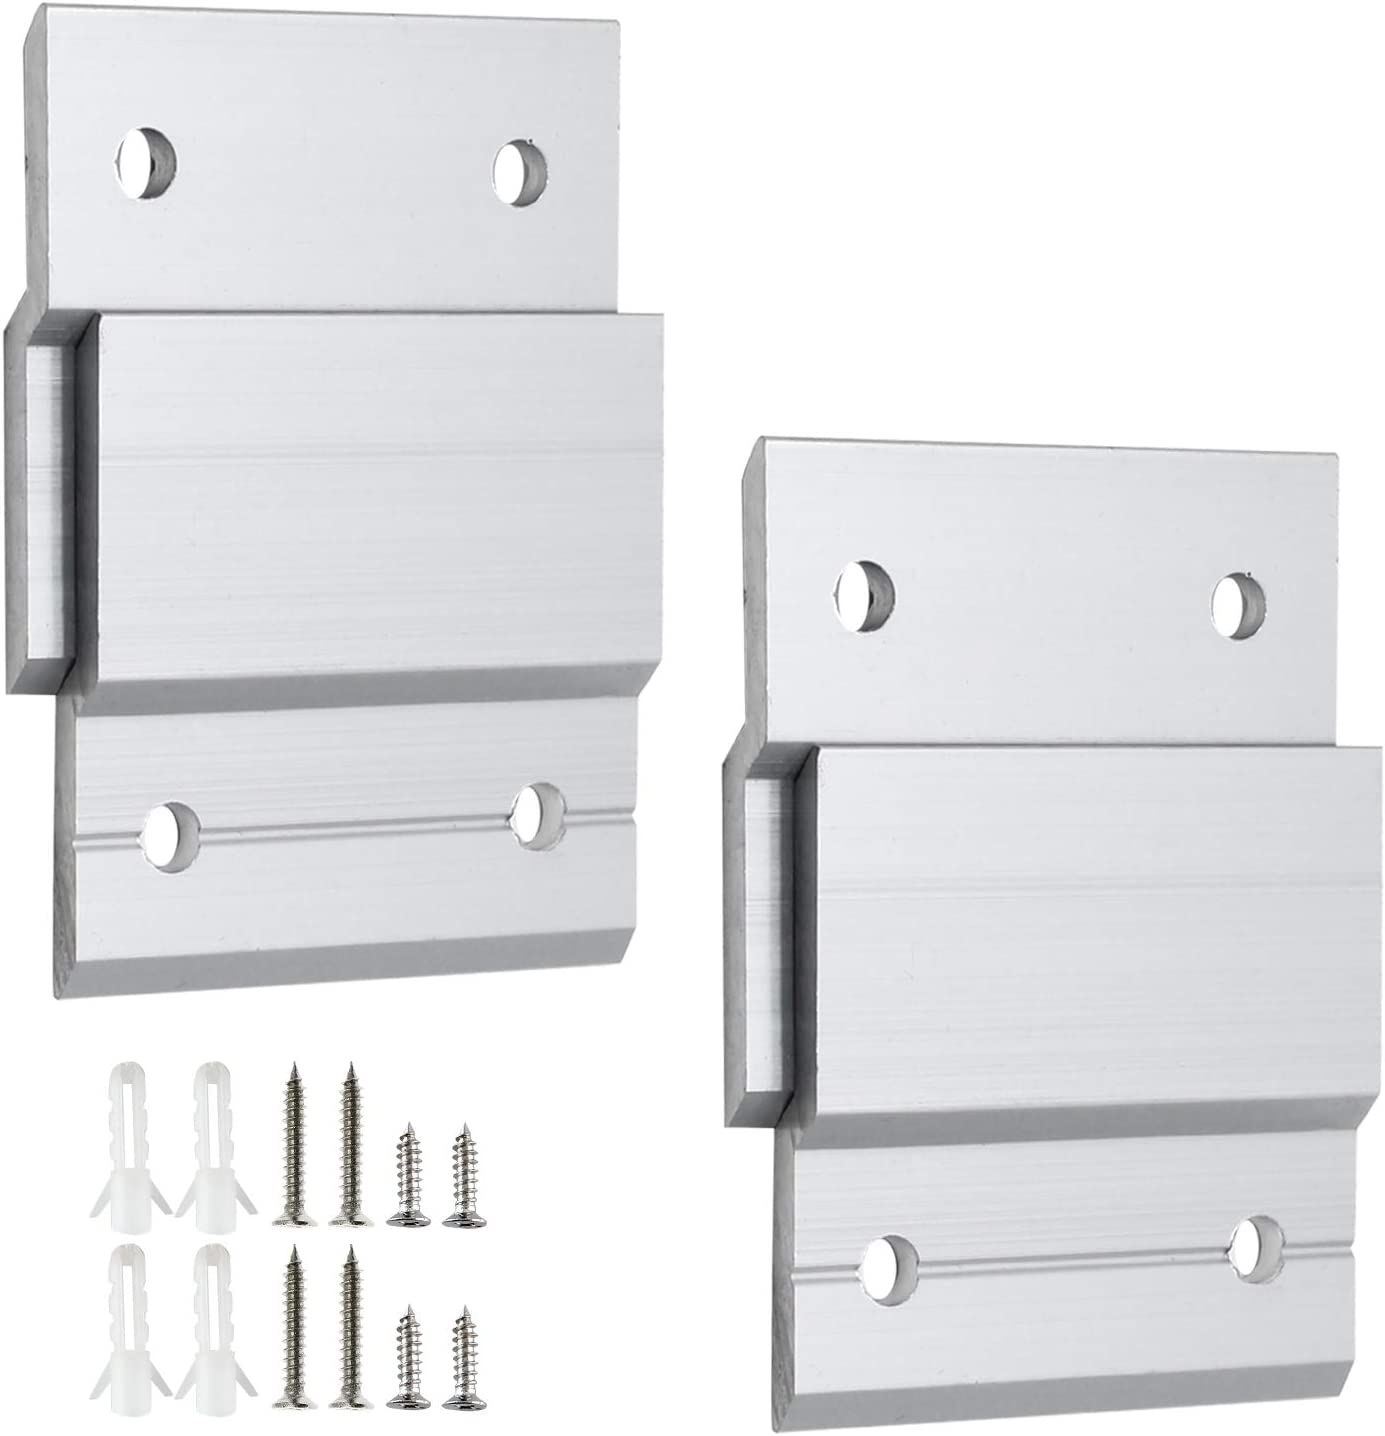 Wall Panels 2 Pairs Aluminum Alloy Interlocking Z Bar Clips Wall Mounting Brackets for Hanging Mirror Picture Artwork Zorfeter 2 Z Hanger French Cleat Picture Hanger Kit